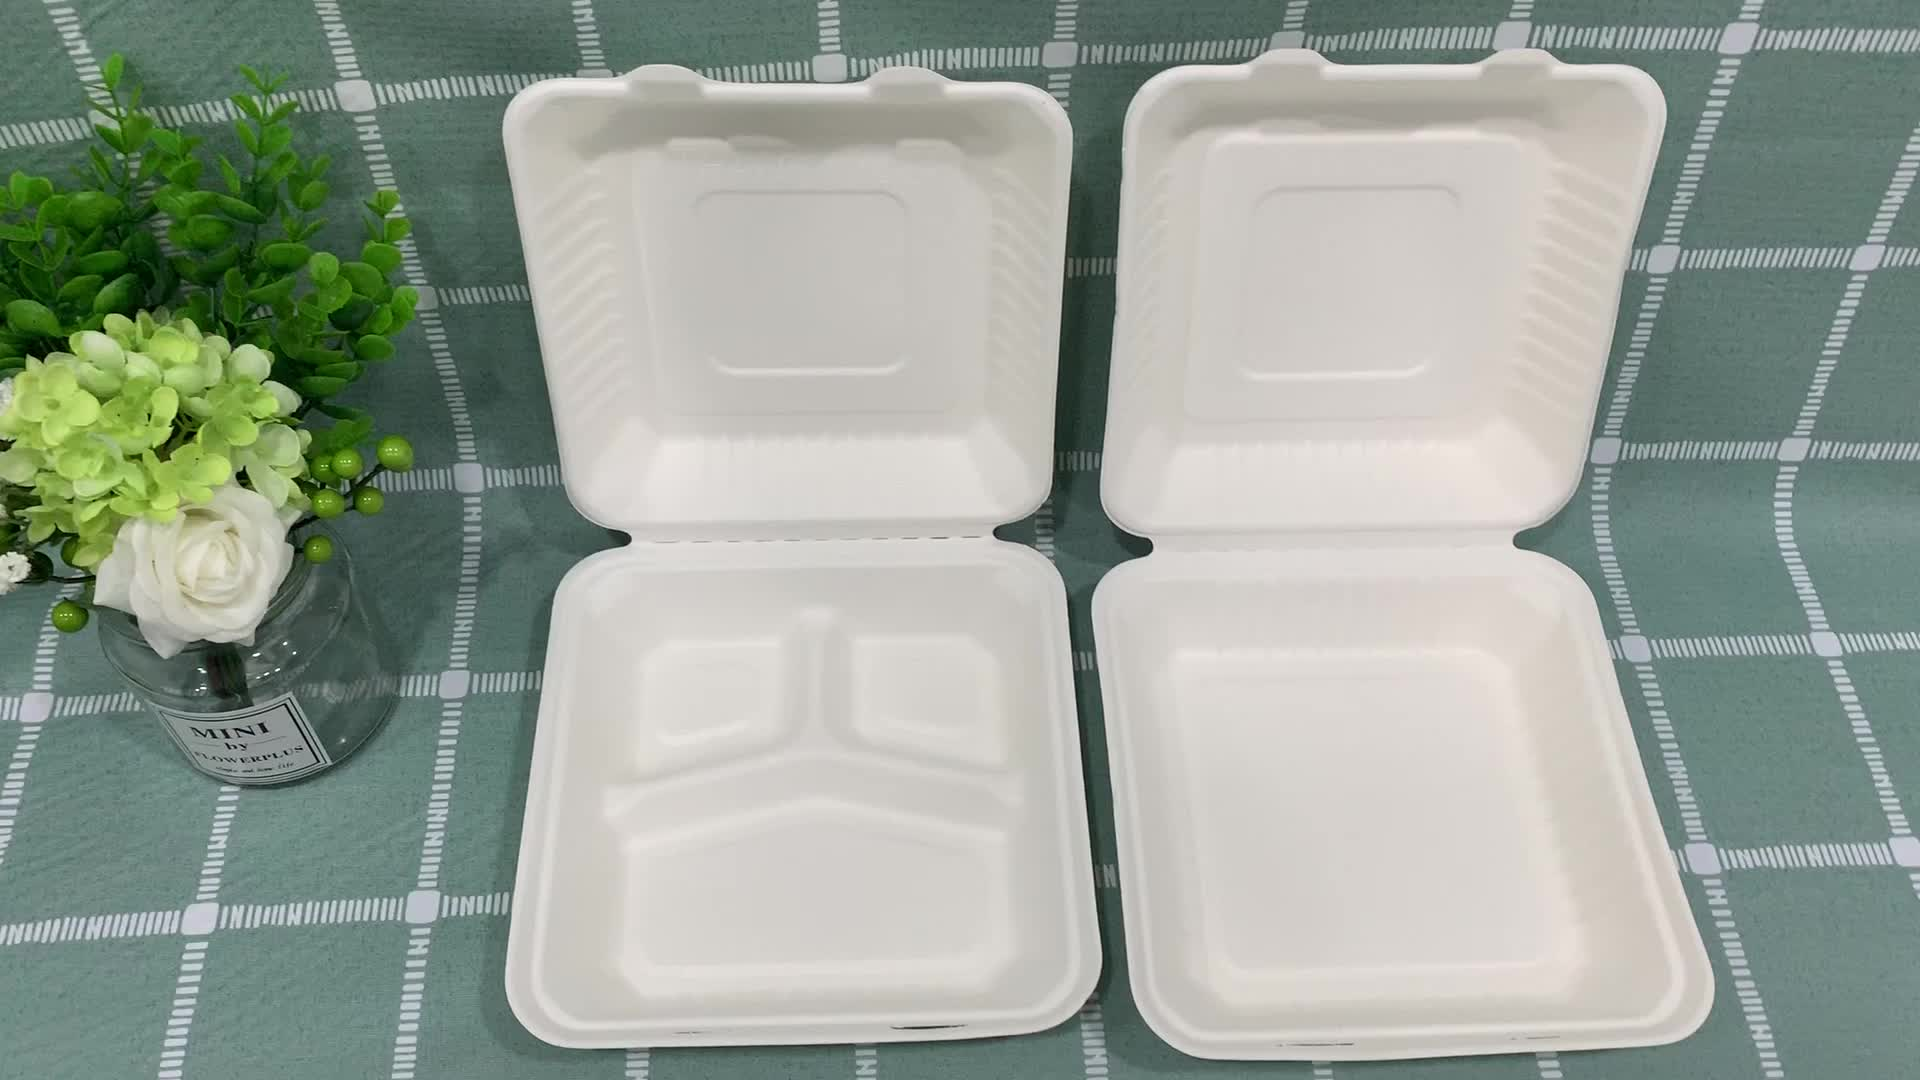 100% biodegradable and compostable tableware microwave and freezer safe bagasse lunch box 9inch box